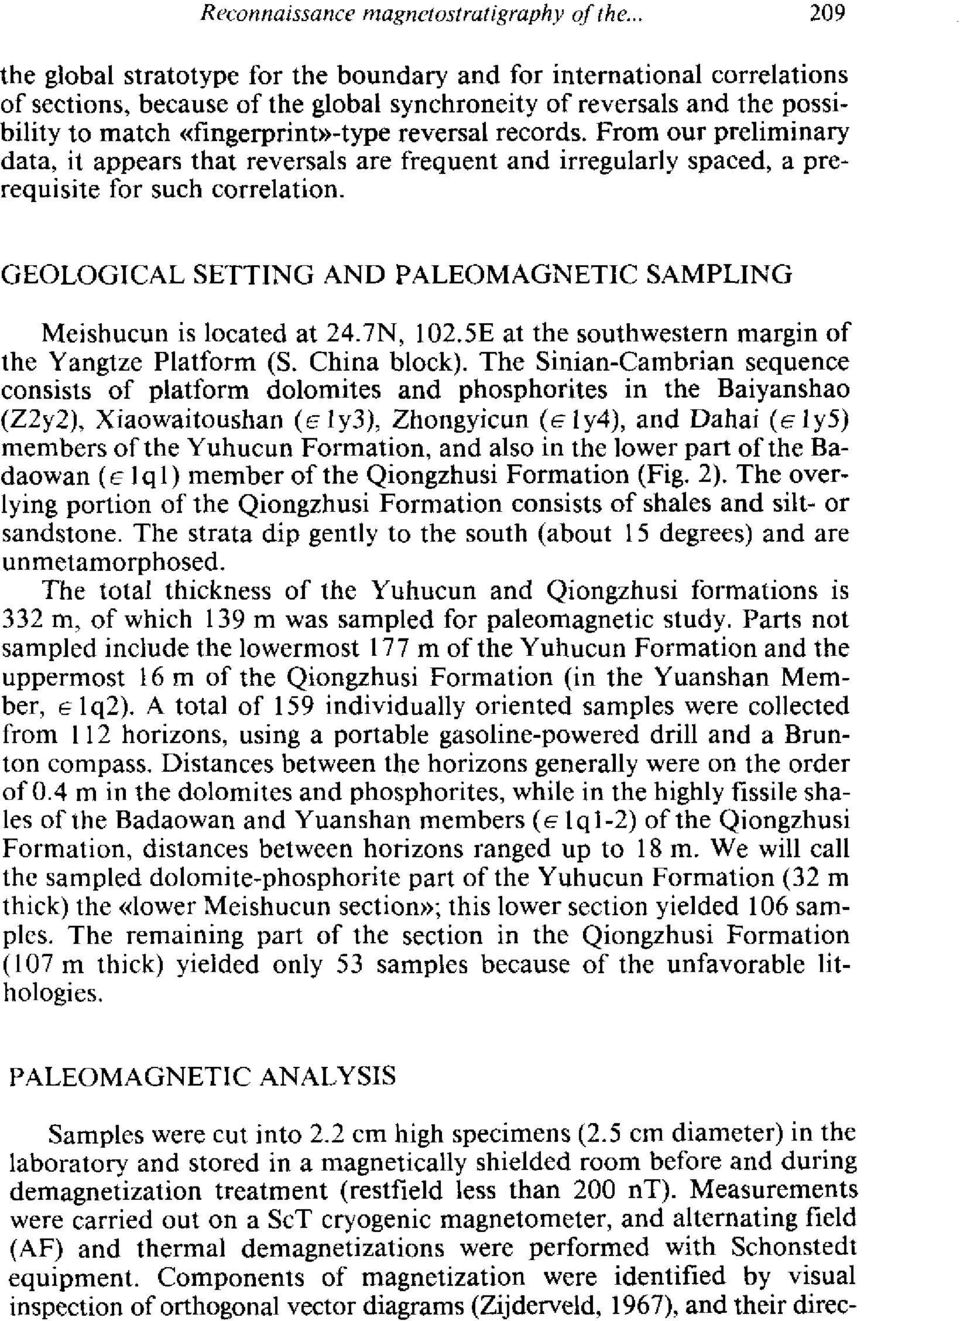 GOLOGICAL STTIG AD PALOMAGTIC SAMPLIO Meishucun is lcated at 24.7, 102.5 at the suthwestern margin f tite Yangtze Platfrm (5. China blck). Tite Sinian-Cambrian sequence cnsists f platfrm dlmites ant!